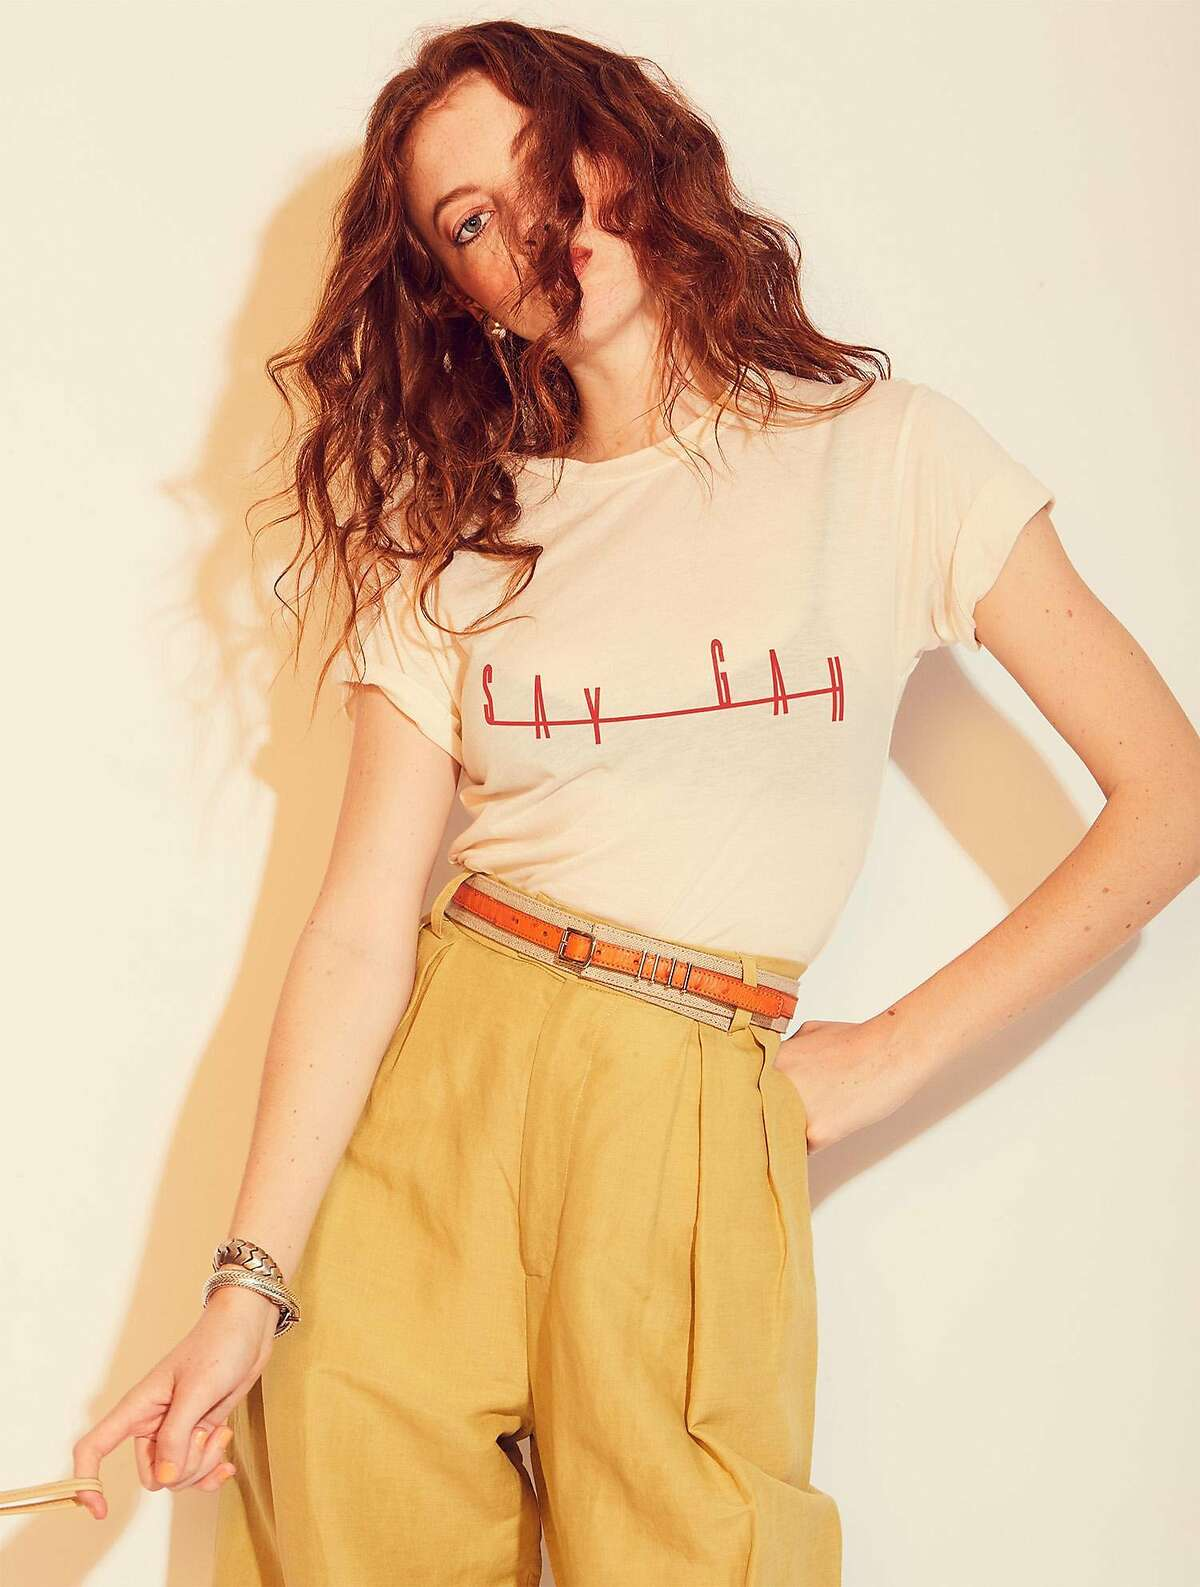 """T-shirt brand MONOGRAM has partnered with San Francisco etailer Lisa Says Gah to create a limited-edition shirt for $65 at lisasaysgah.com and monogramstudio.com. The company is also introducing a new style May 3, """"Enfant Terrible."""""""